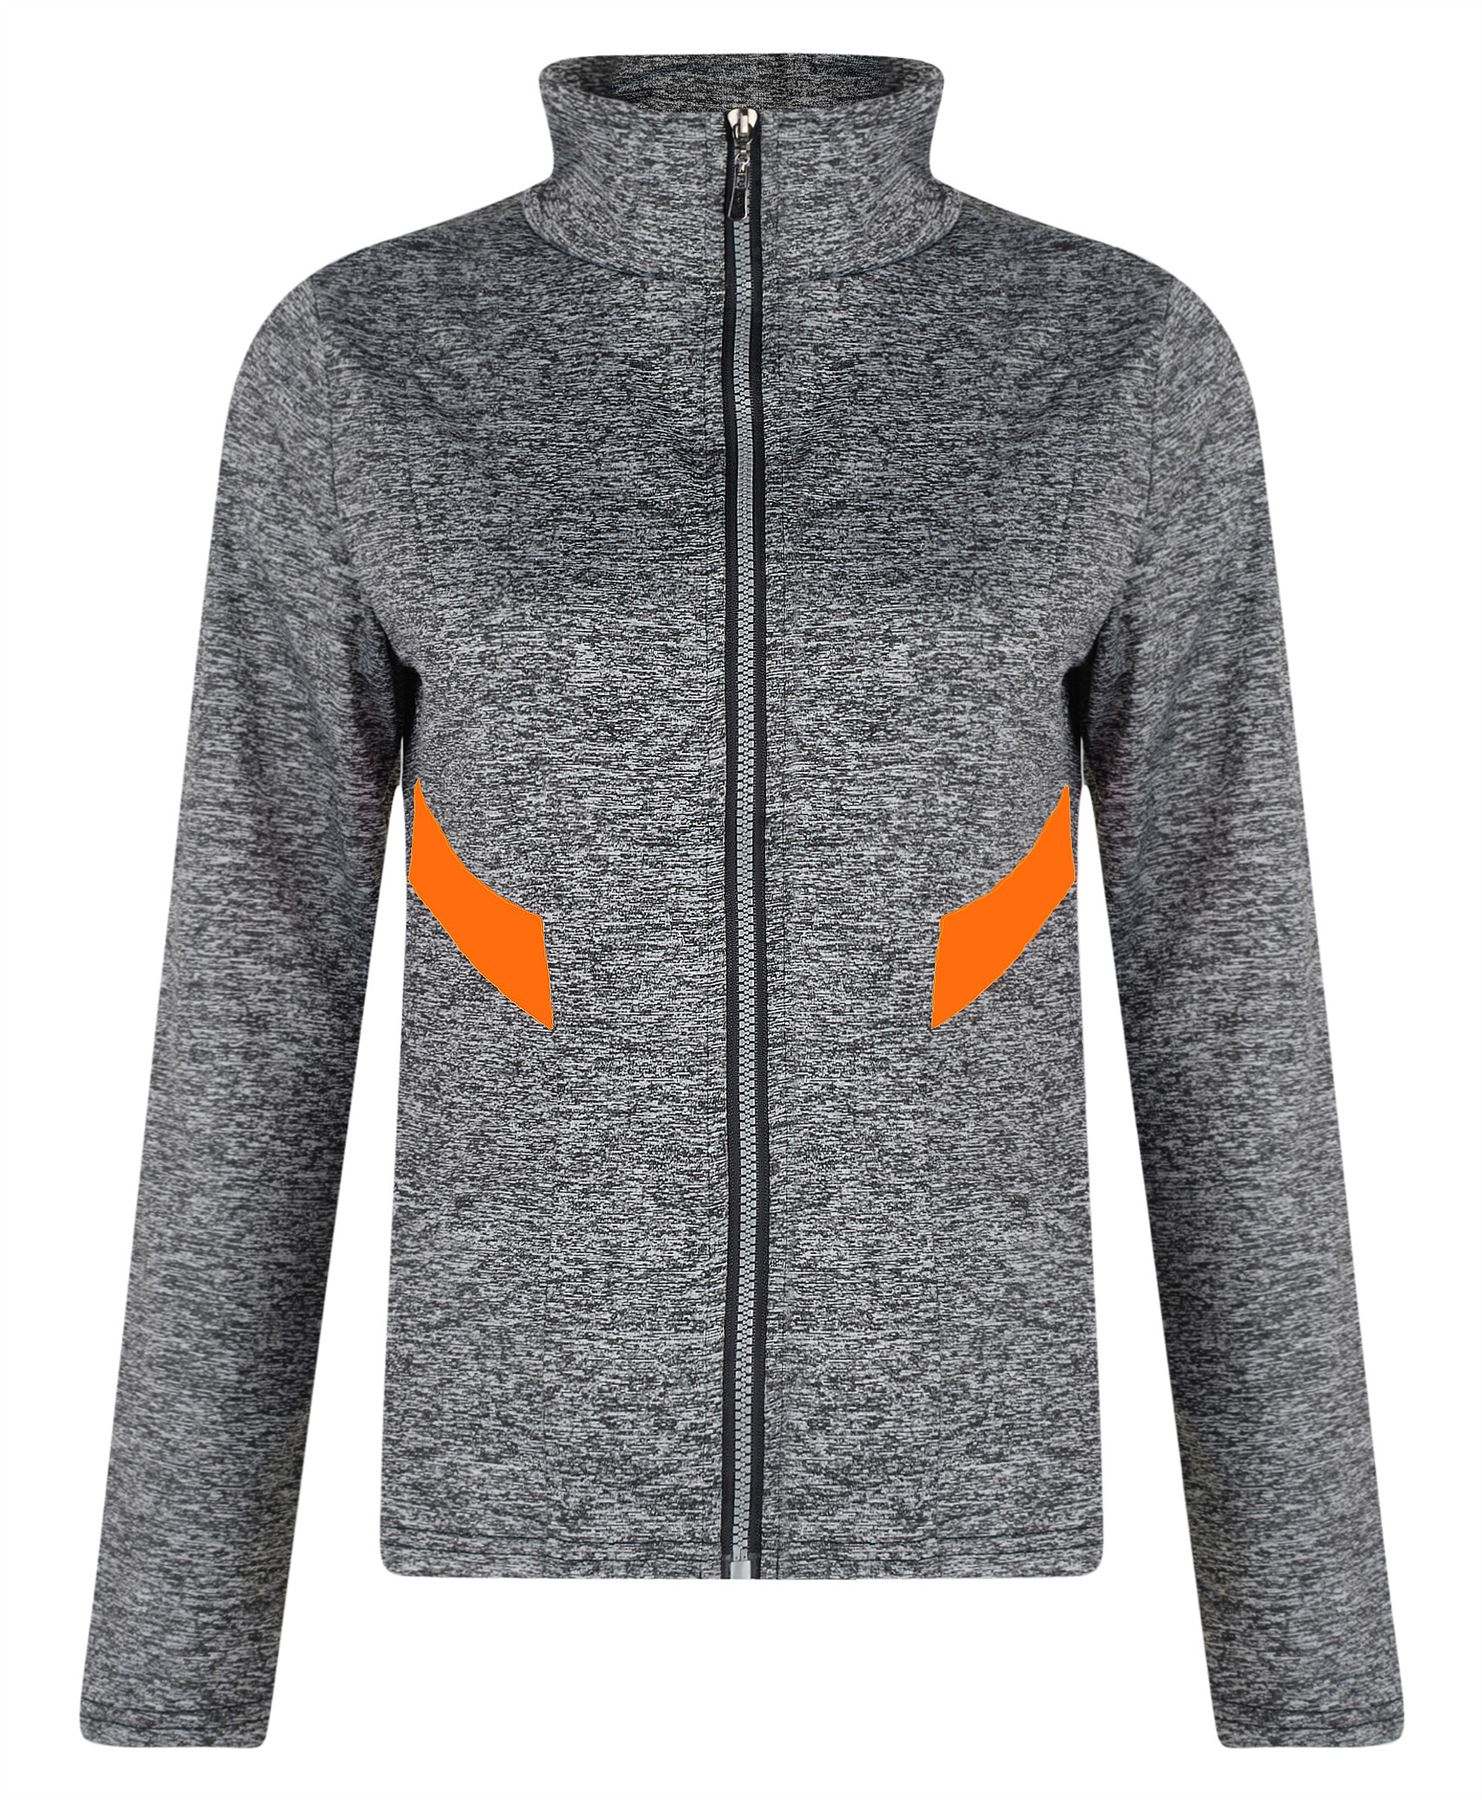 View our range of men s Gym hoodies united by dynamic design and remarkable quality. Our Gym hoodies range from summer essentials and sleeveless tops, to thick winter pullovers and winter coats.